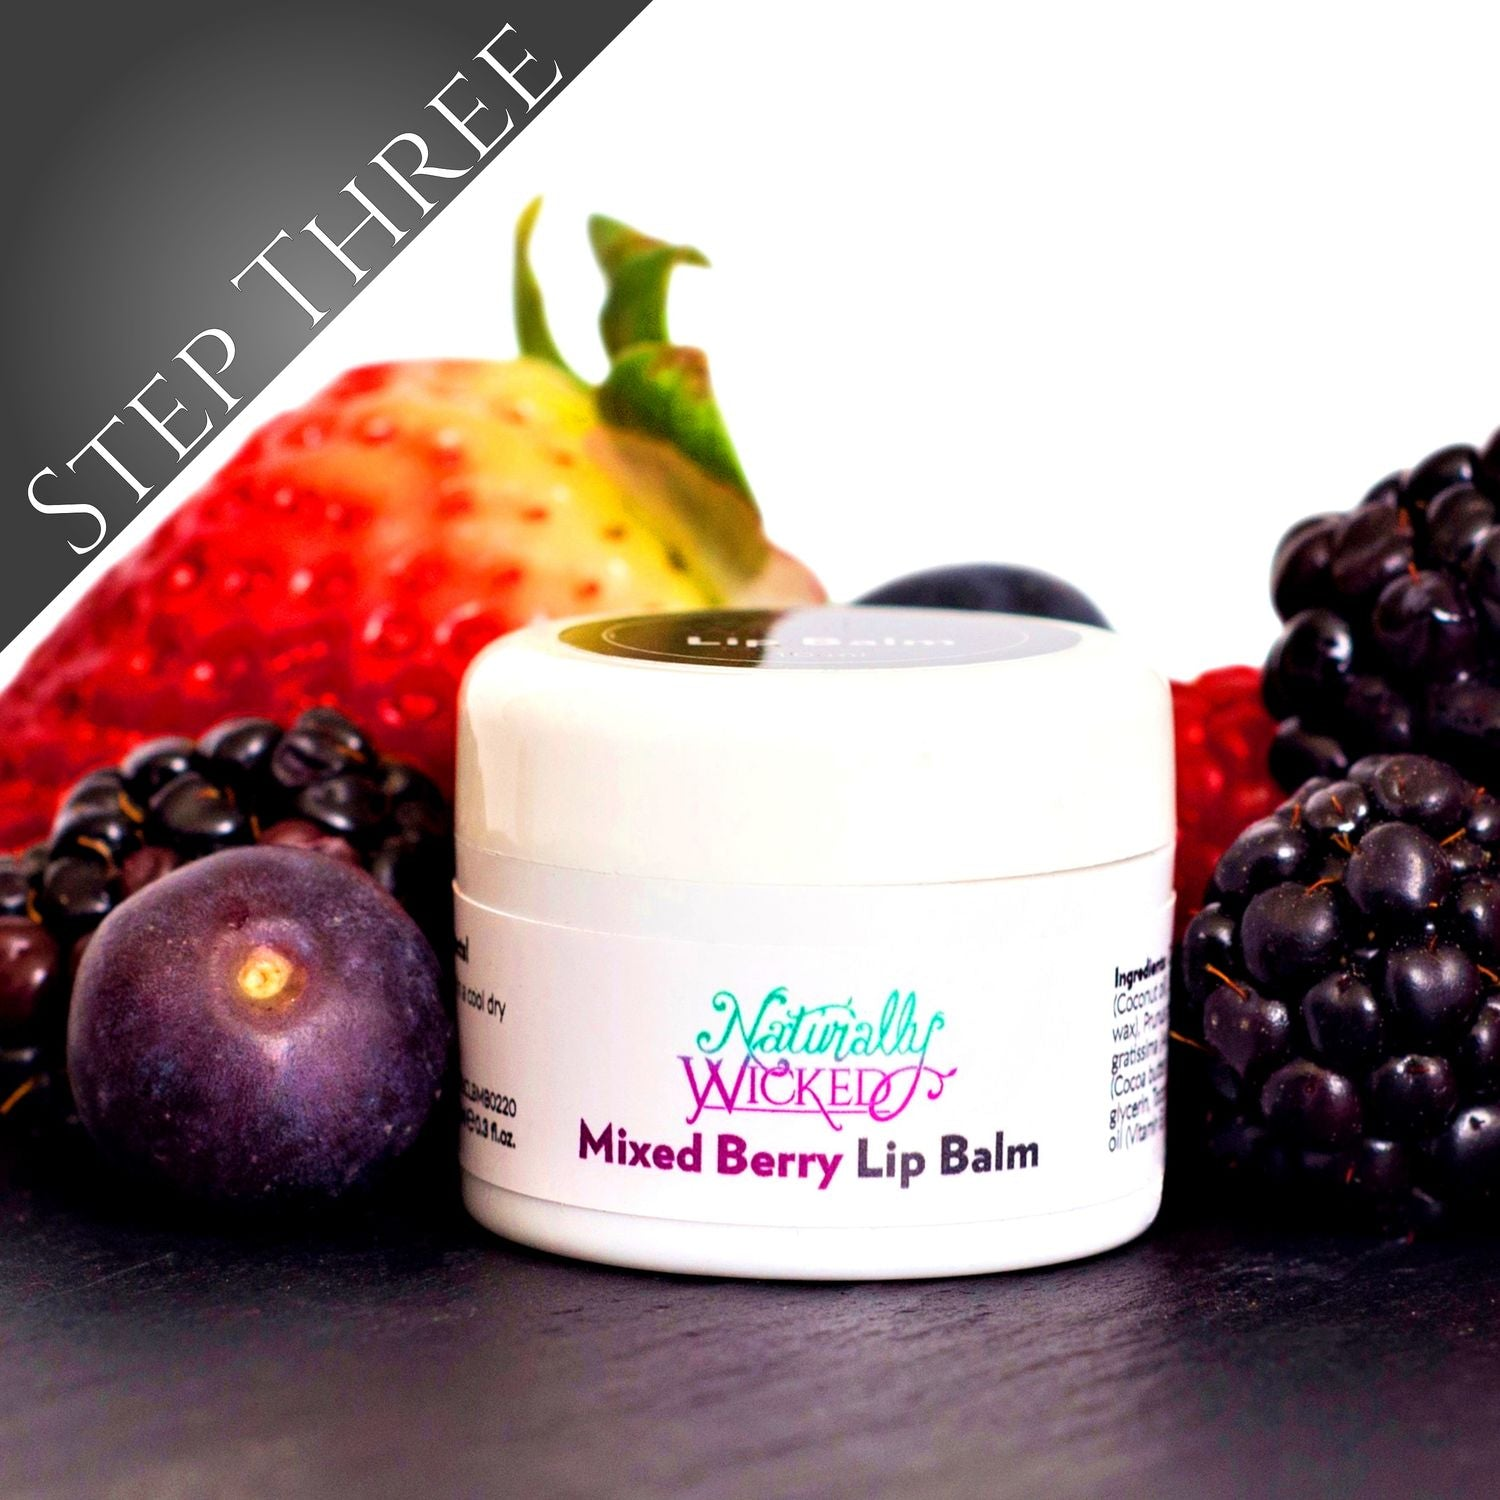 Naturally Wicked Sweet Orange, Coconut & Mixed Berry Lip Balms On A Hydrating, Water & Fruity Background